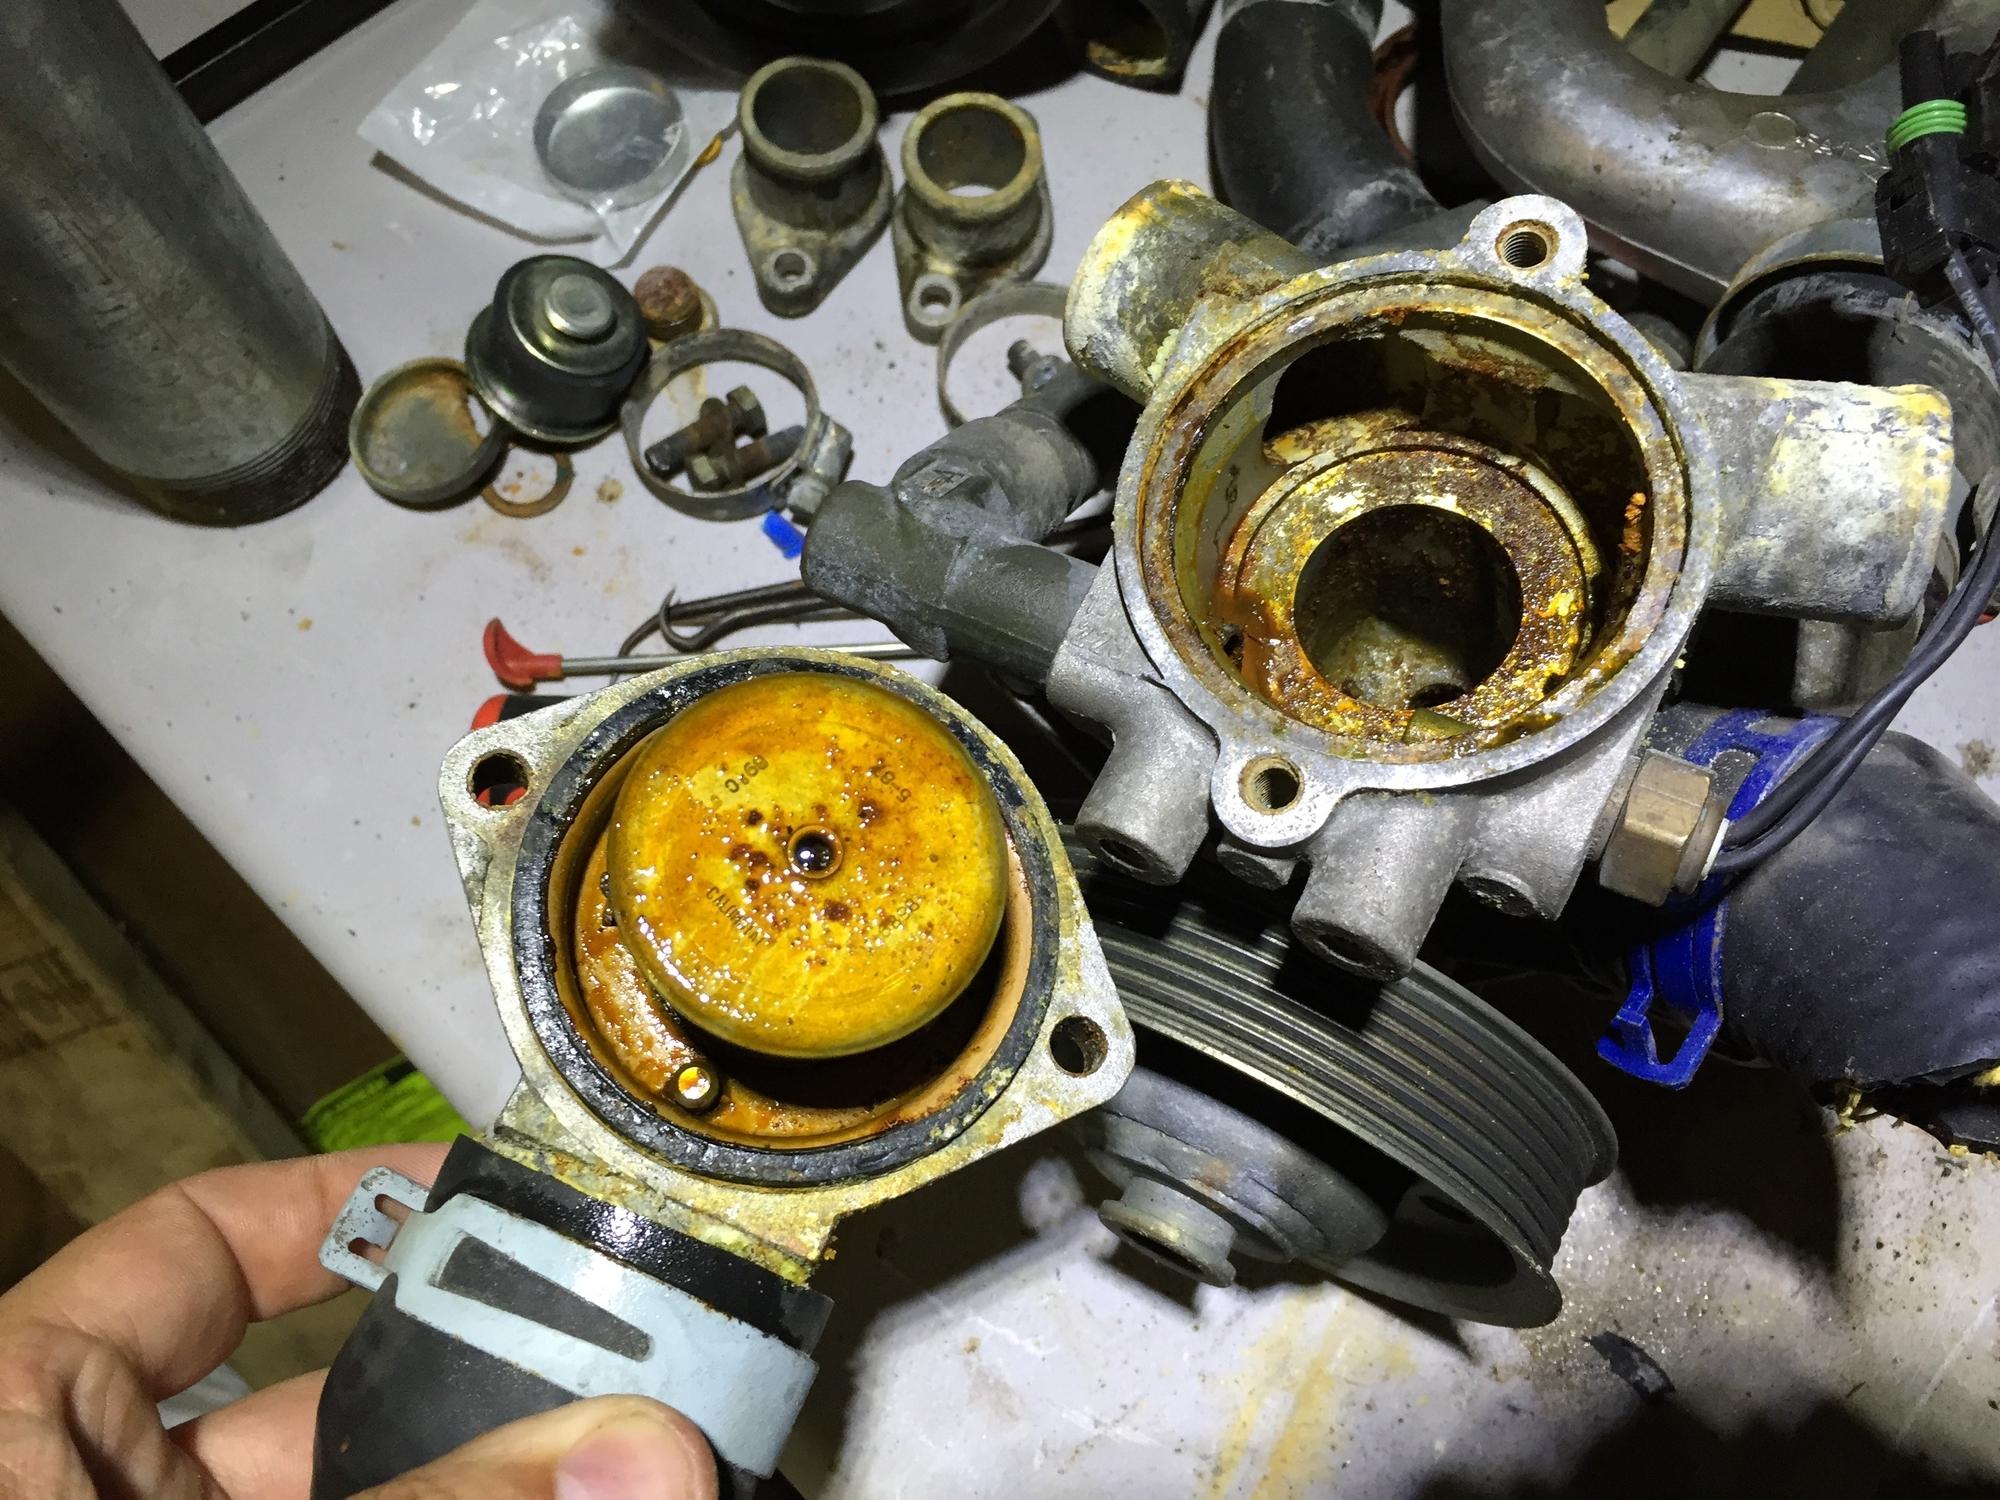 The dirty innards of my old water pump with the thermostat housing removed.